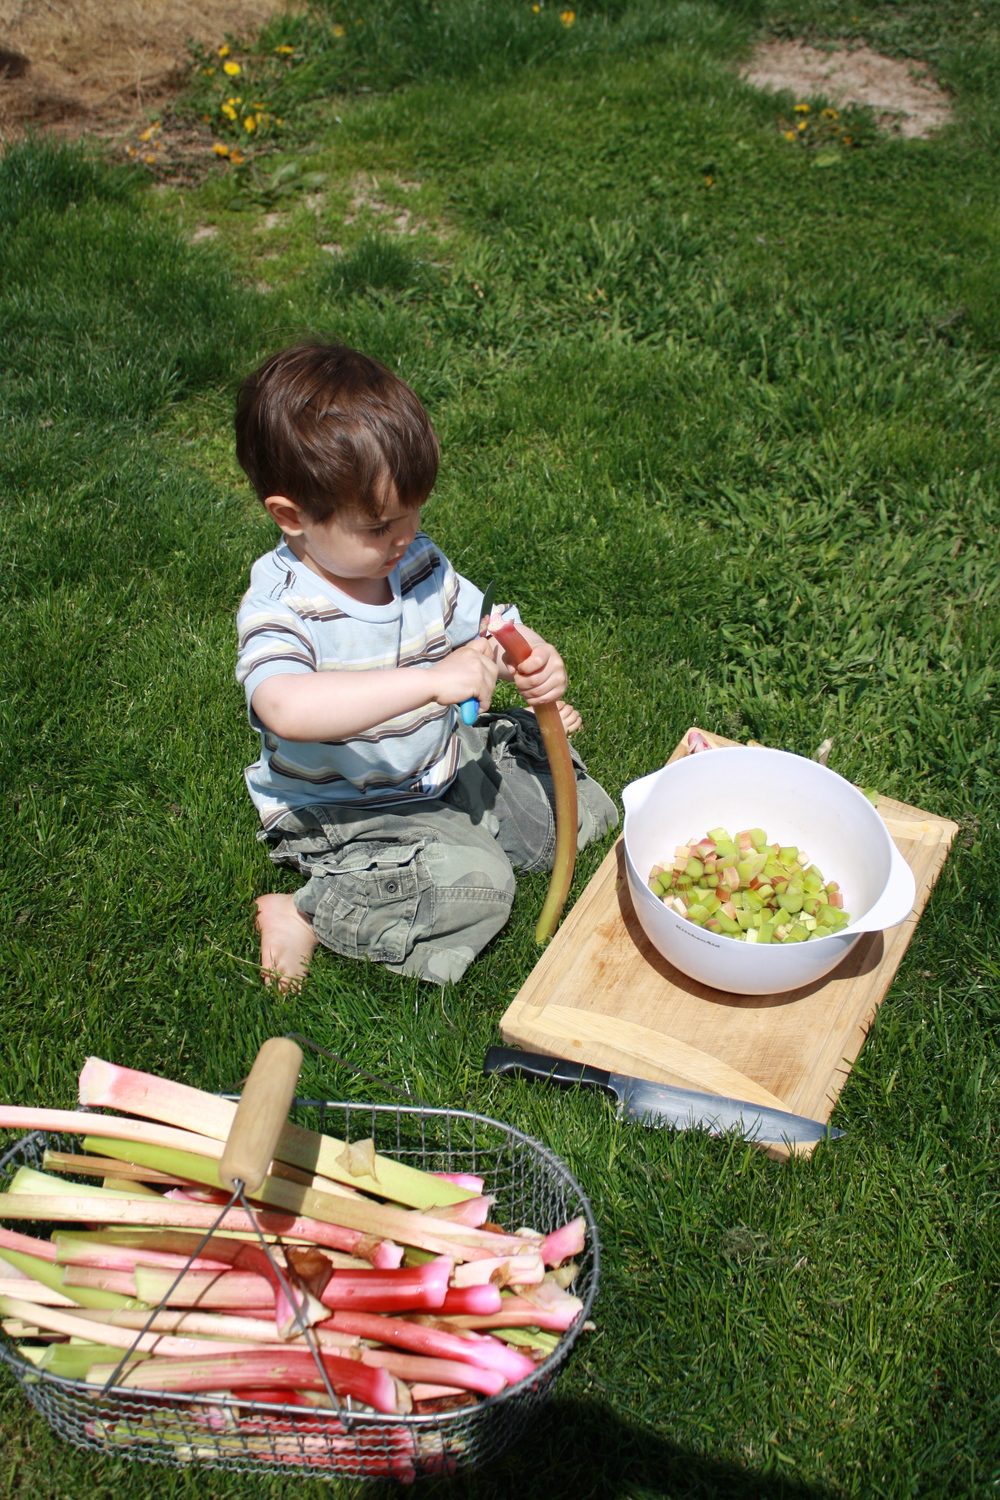 Clark at 2 helping me chop rhubarb for jam.